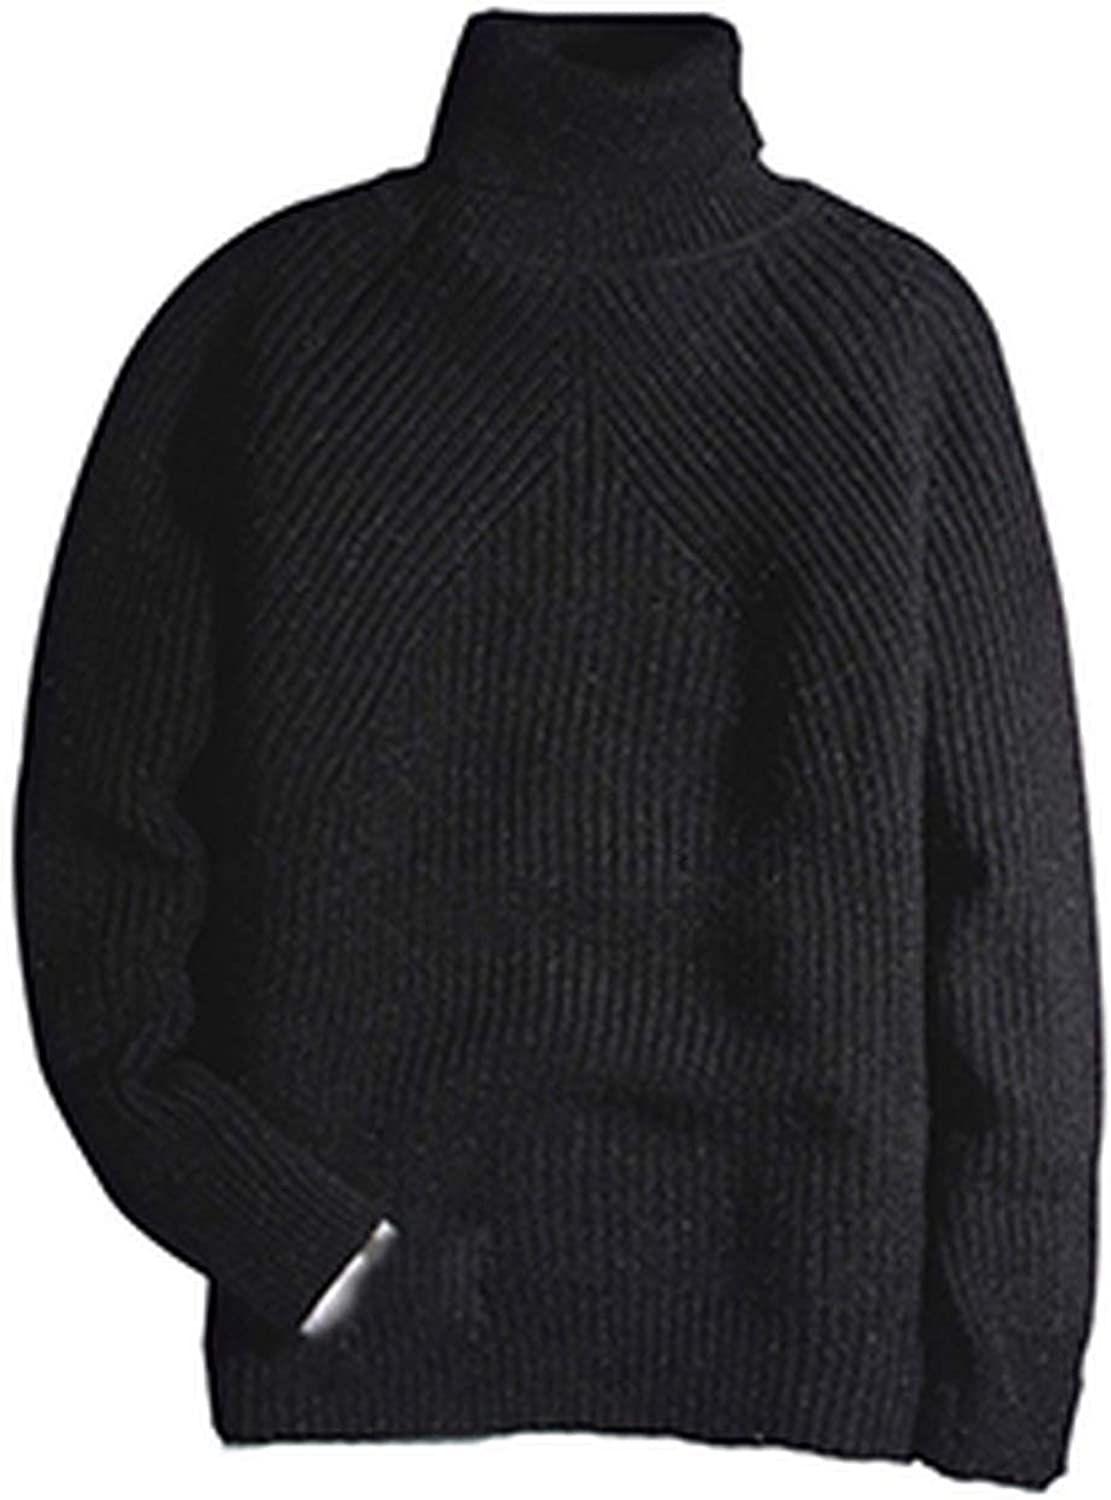 Friendshiy Sweater Man 2019 Winter Thick Turtleneck Mens Pullover Sweaters Casual Crocheted Striped Knitted,X-Large,Black2